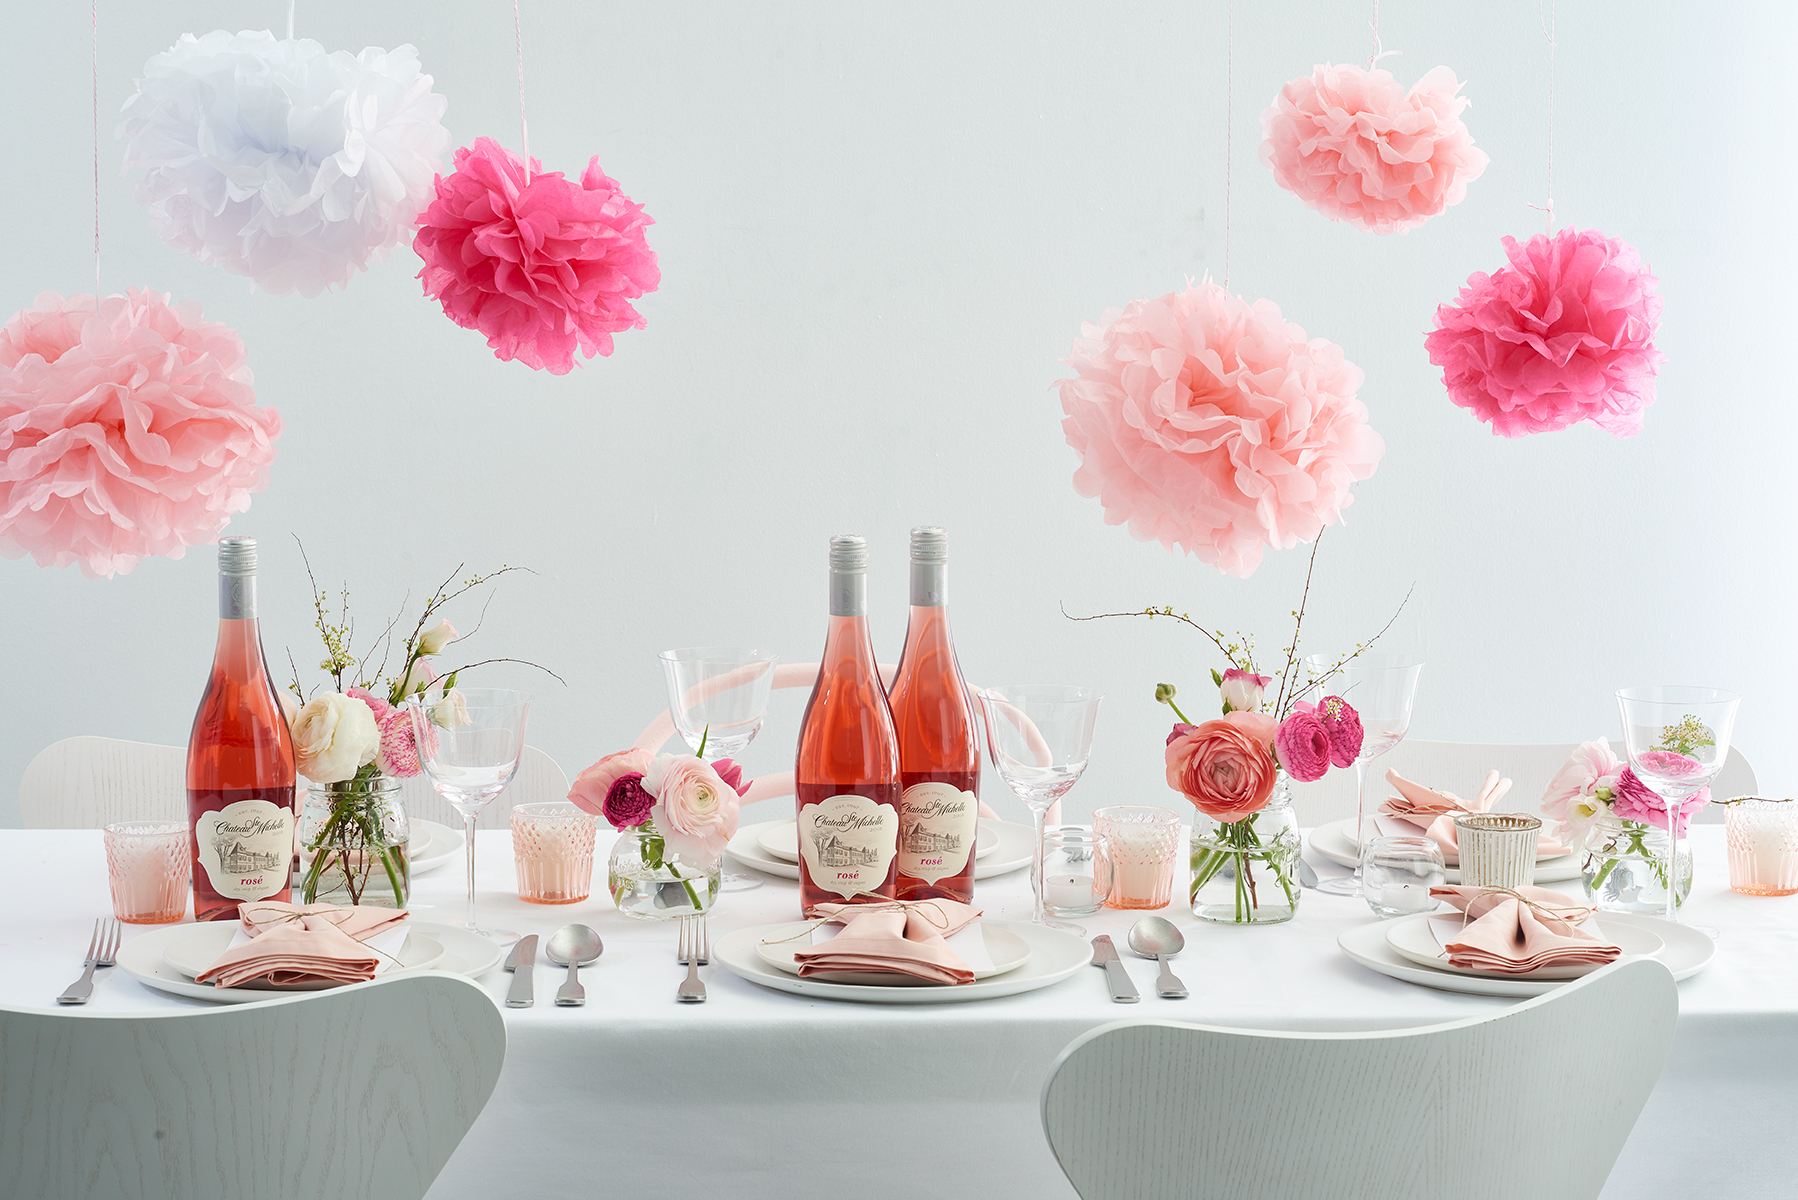 190411-FoundrySteMichelle-Shot1-Tablescape-027